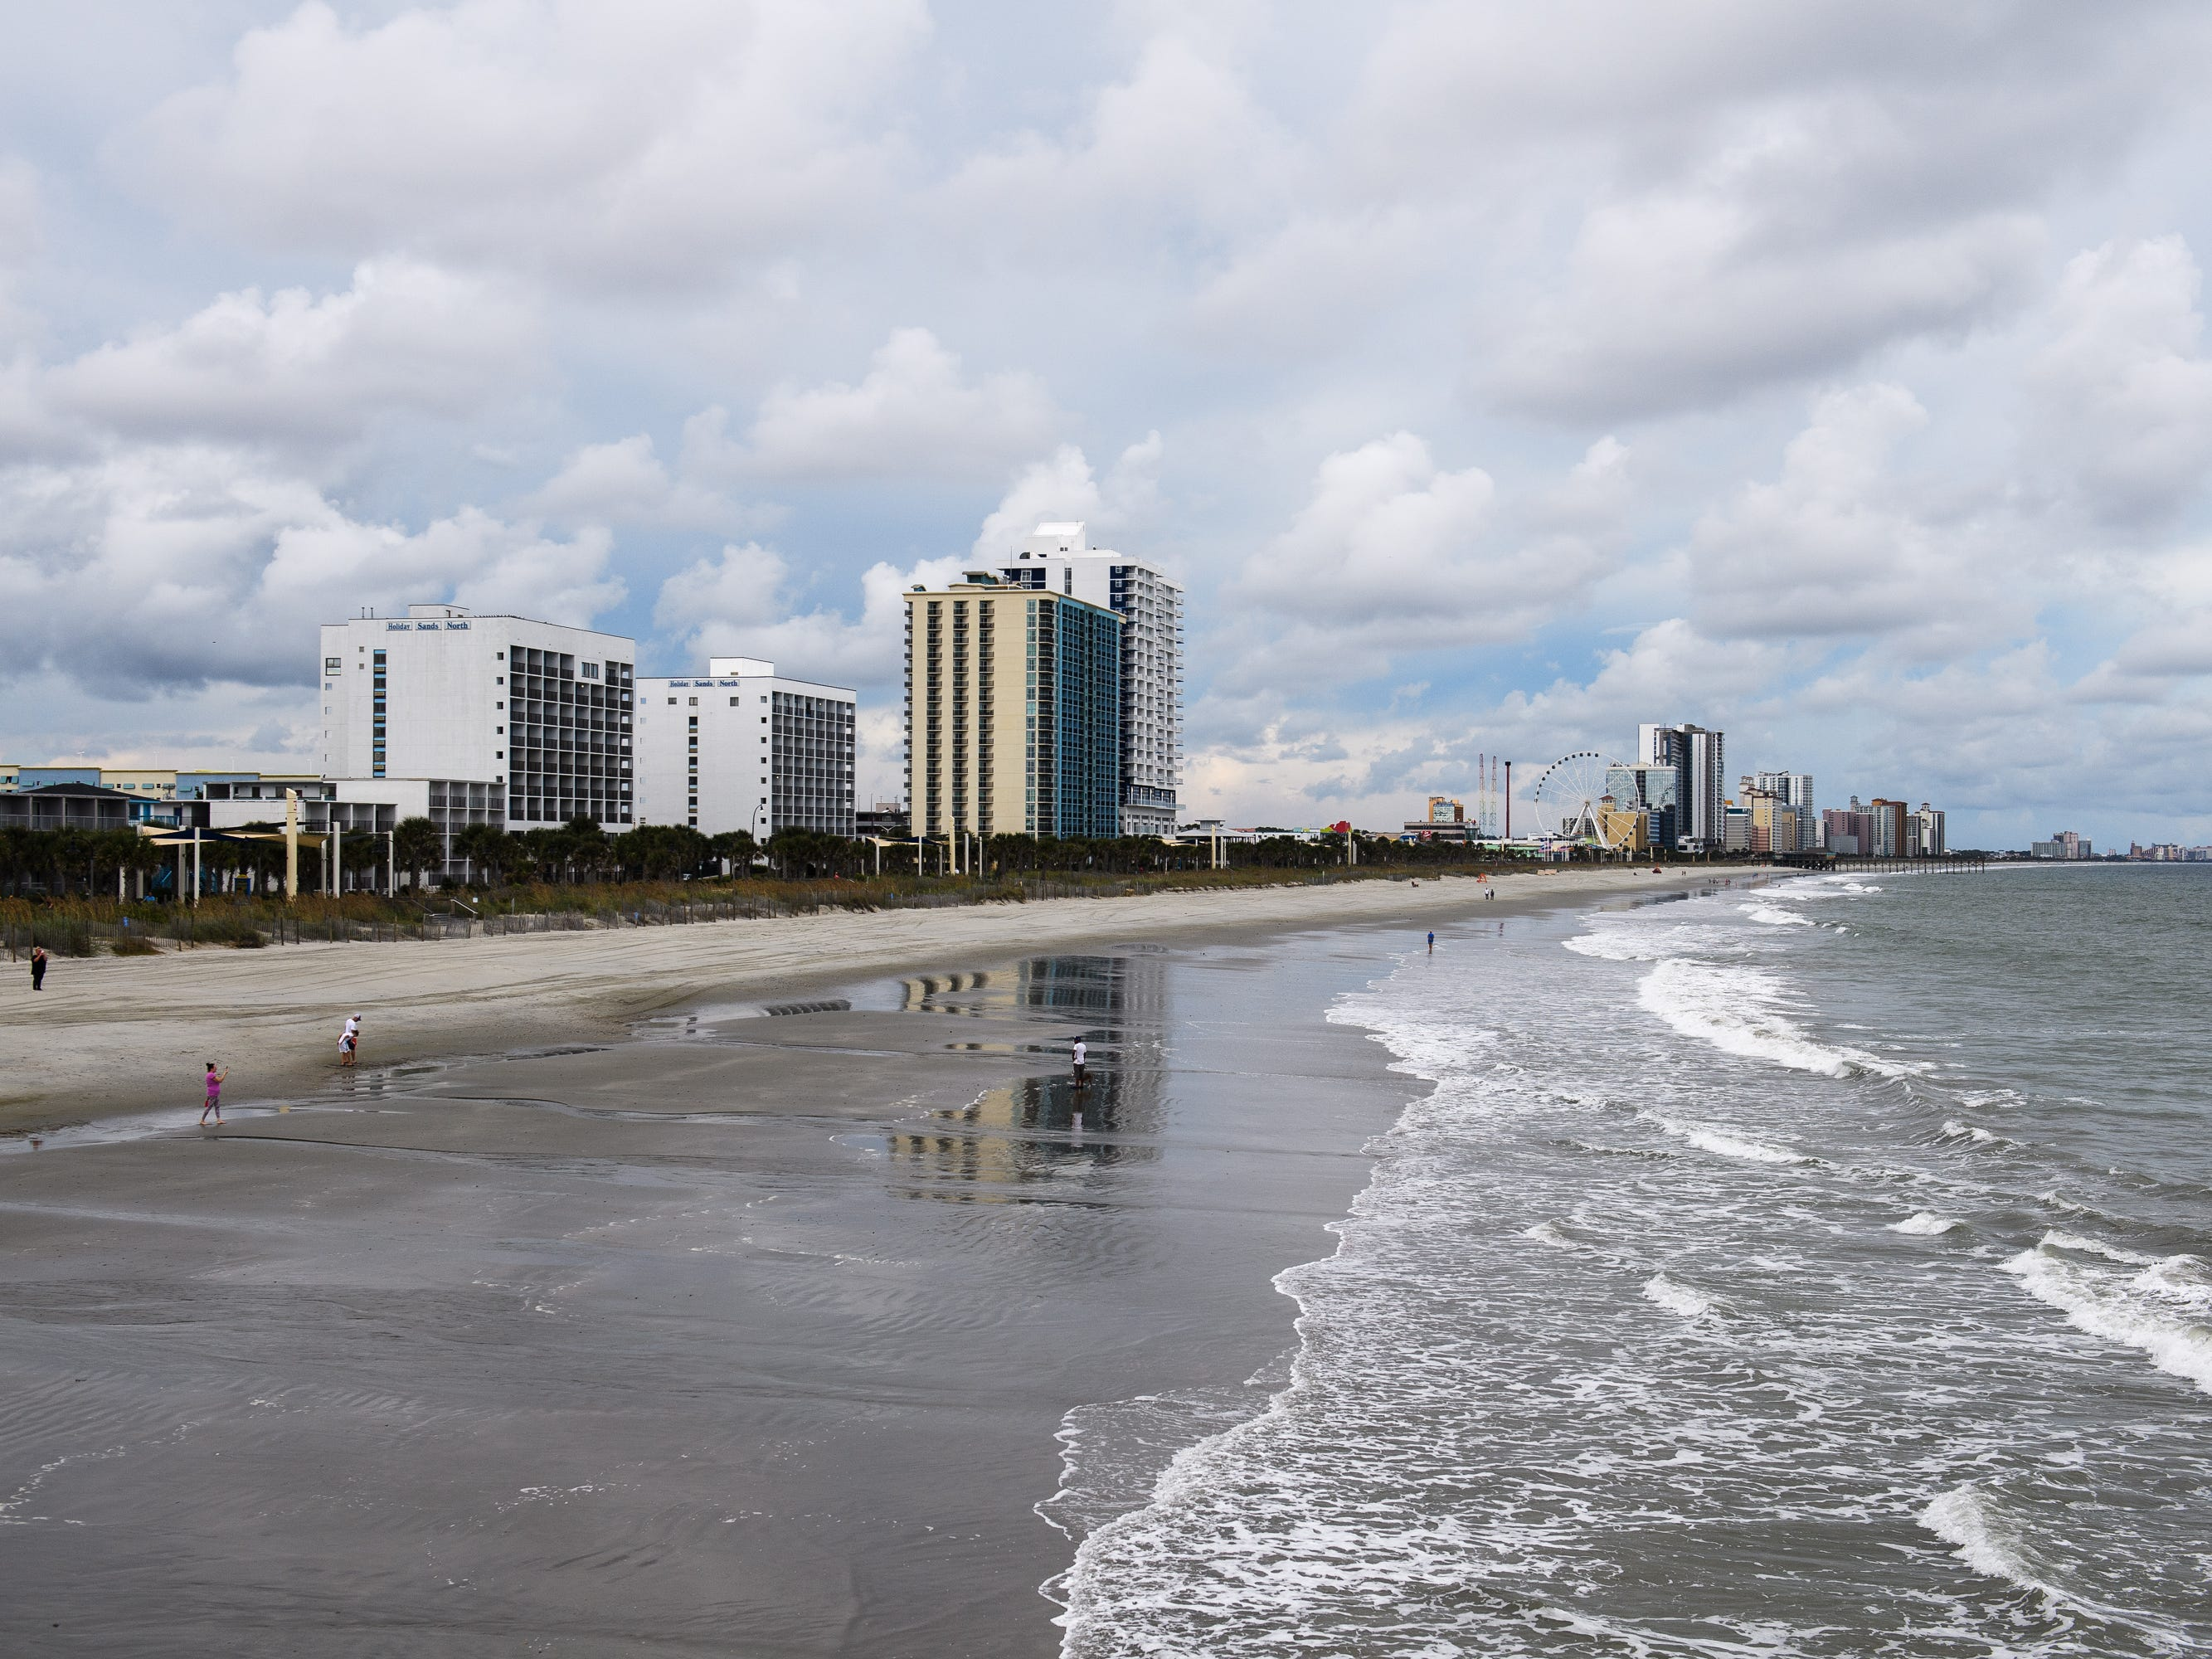 High Rises at Myrtle Beach are visible from the beach days before Hurricane Florence's arrival on Tuesday, Sept. 11, 2018.